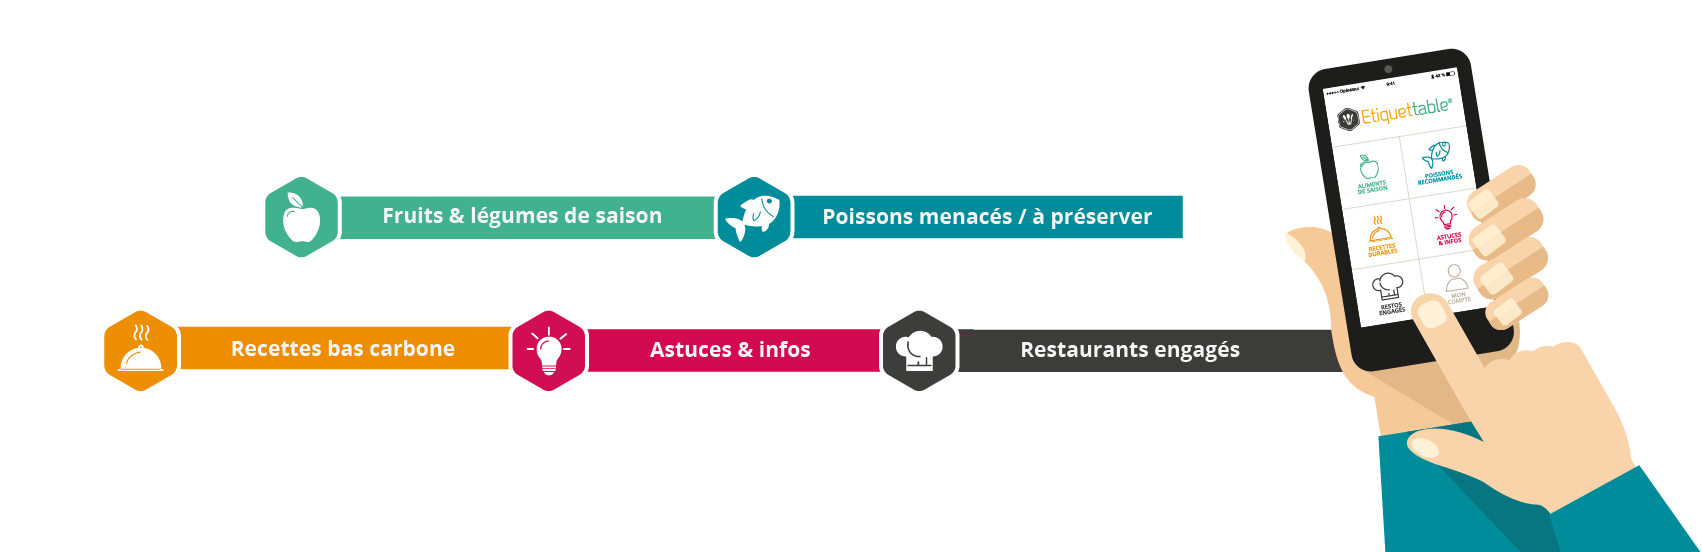 Etiquettable : 1ère appli collaborative de cuisine durable